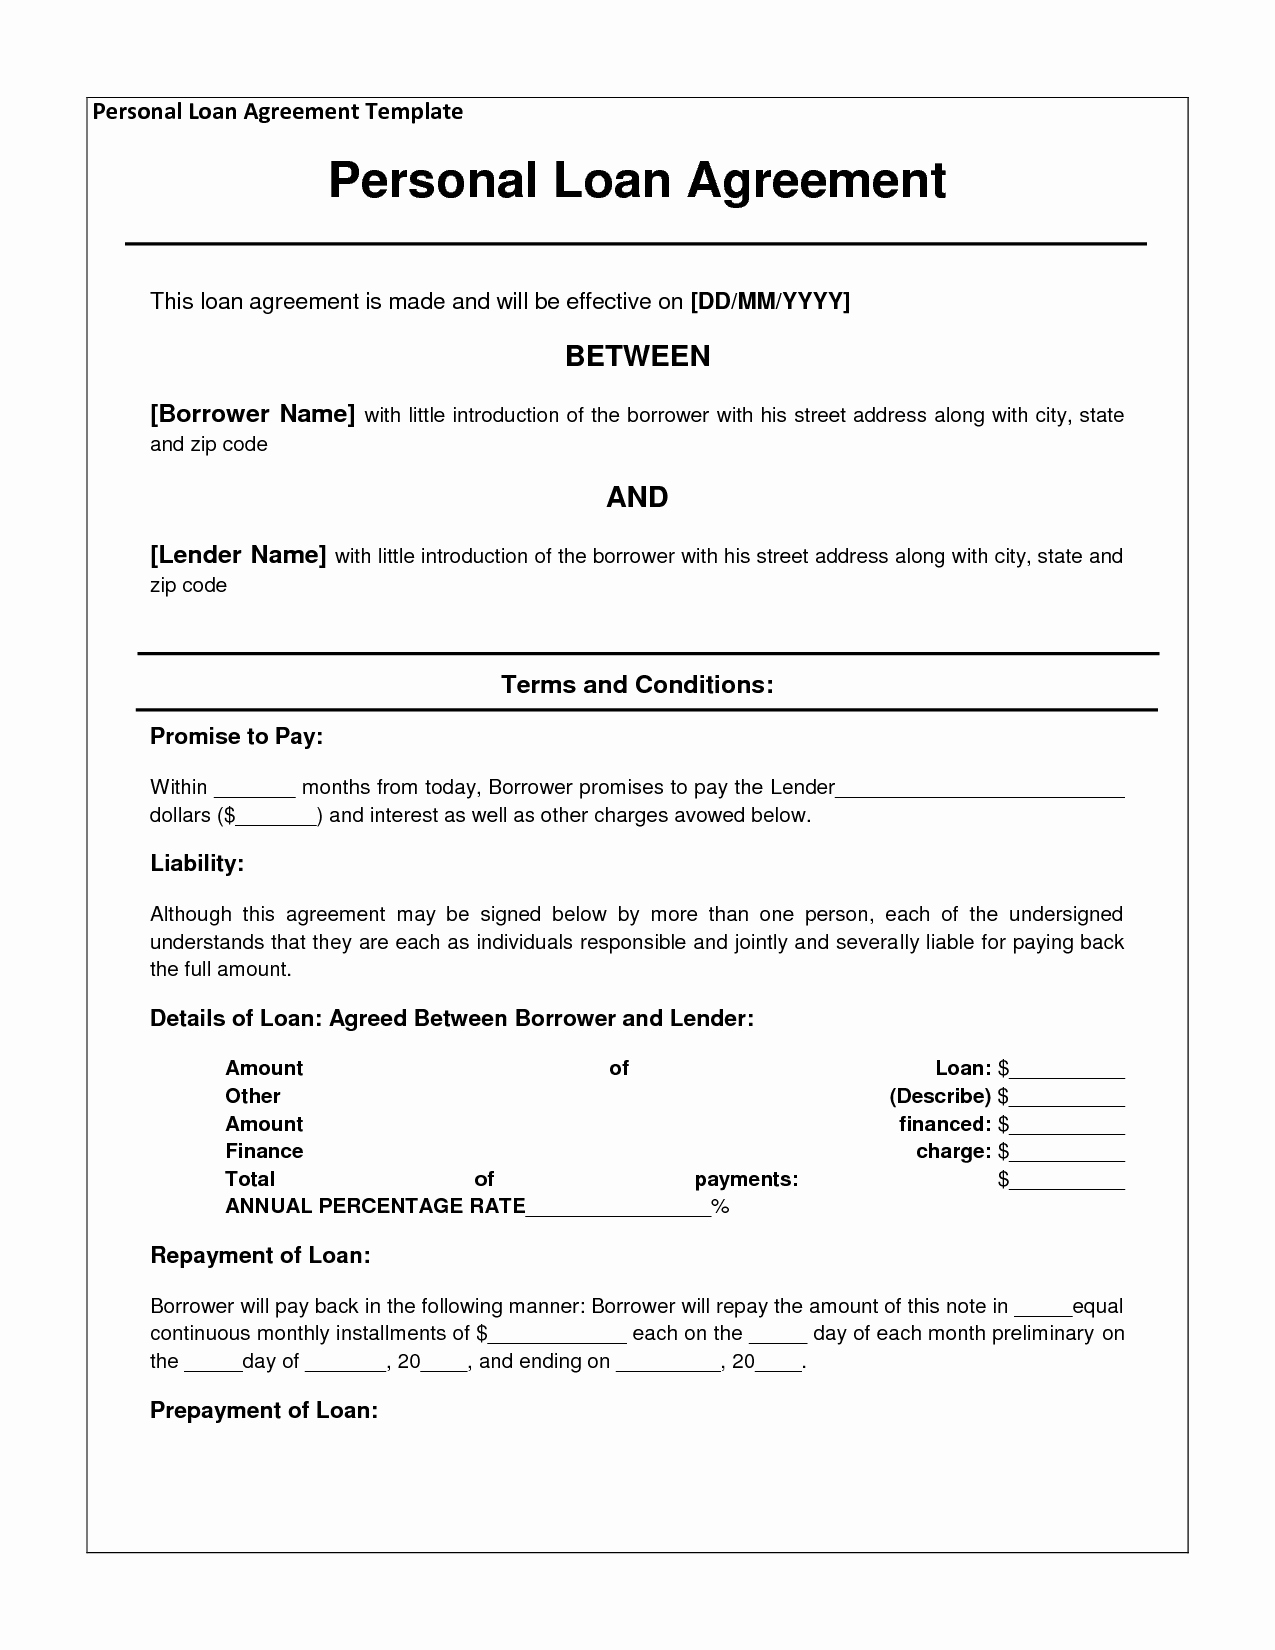 Personal Loan Contract Template Free Unique 14 Loan Agreement Templates Excel Pdf formats